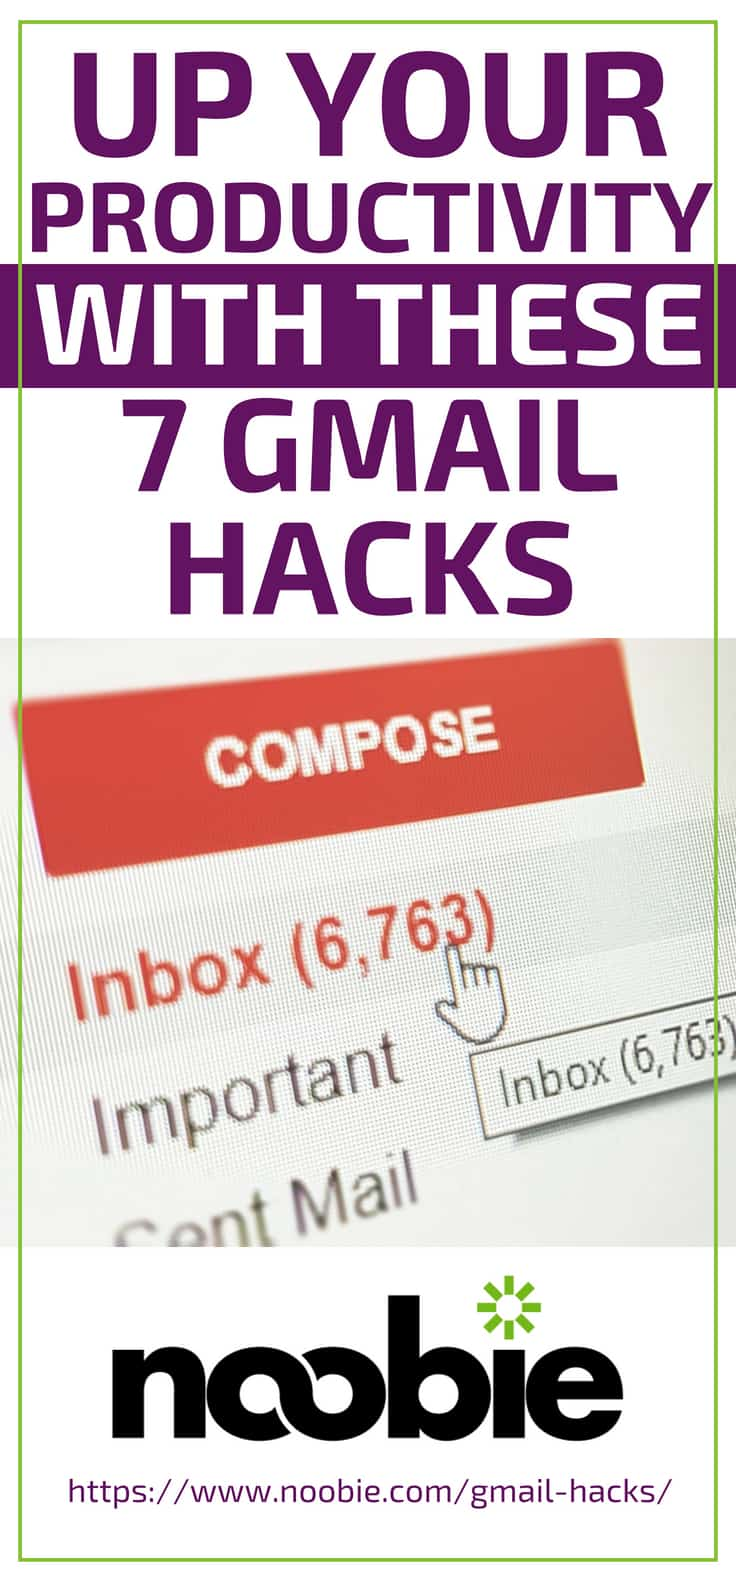 Up Your Productivity With These 7 Gmail Hacks https://www.noobie.com/gmail-hacks/